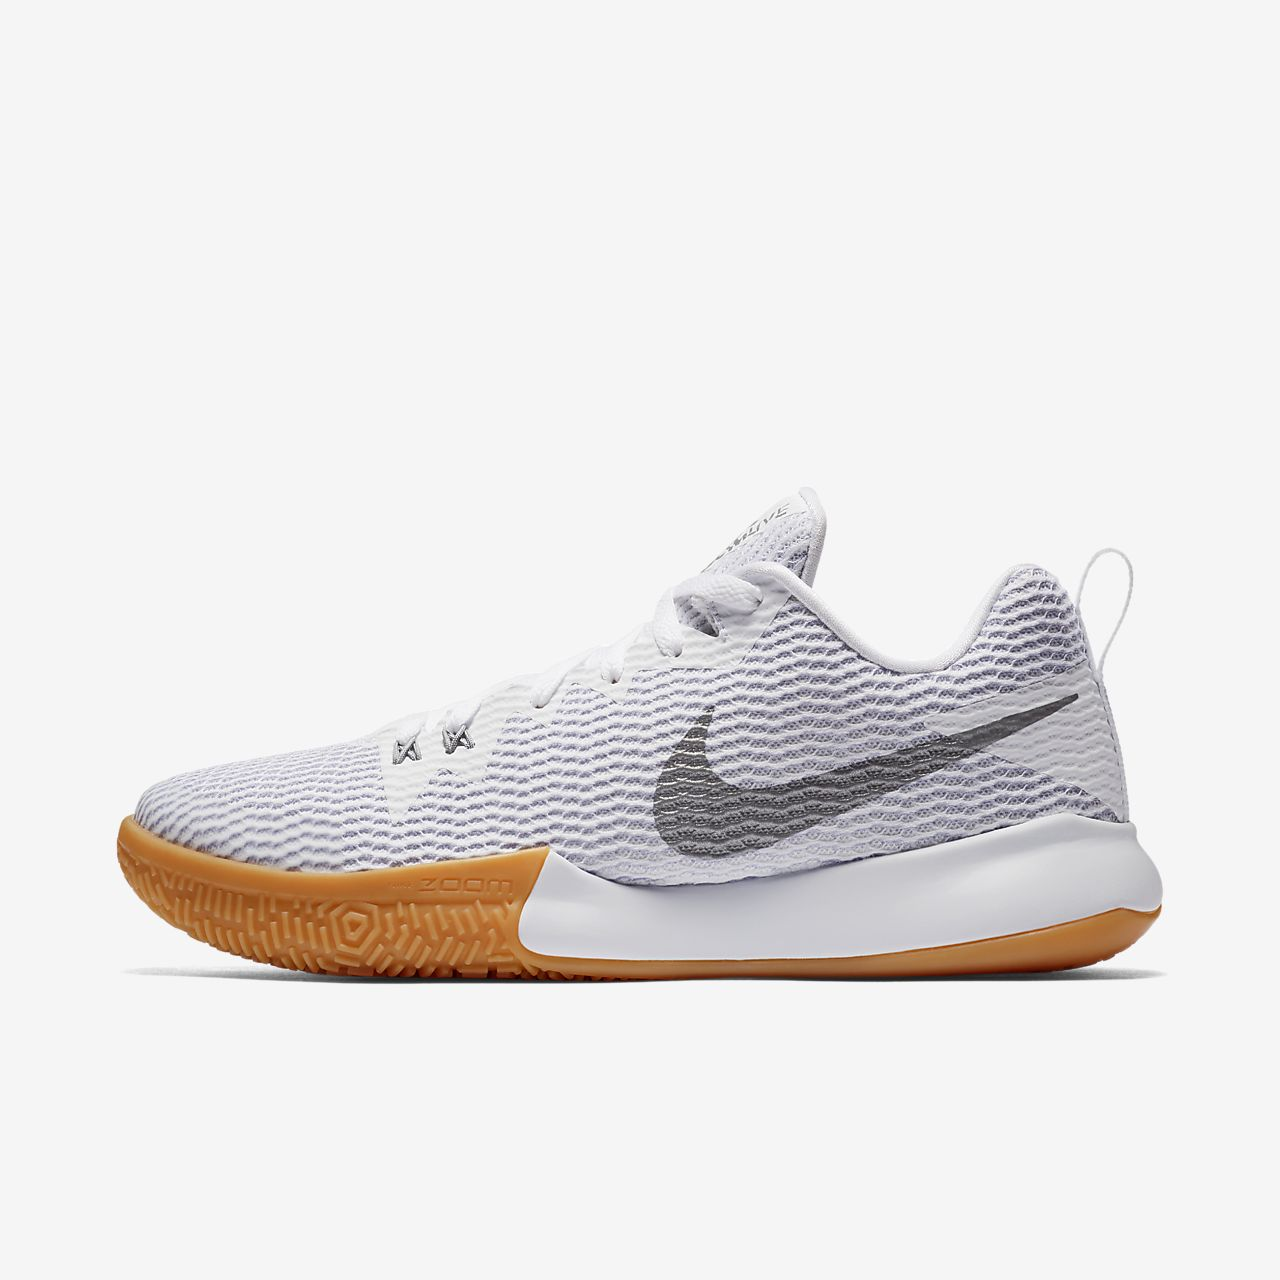 Nike PerformanceZOOM LIVE II - Basketball shoes - white/reflect silver/pure platinum Y9gKzZyXr